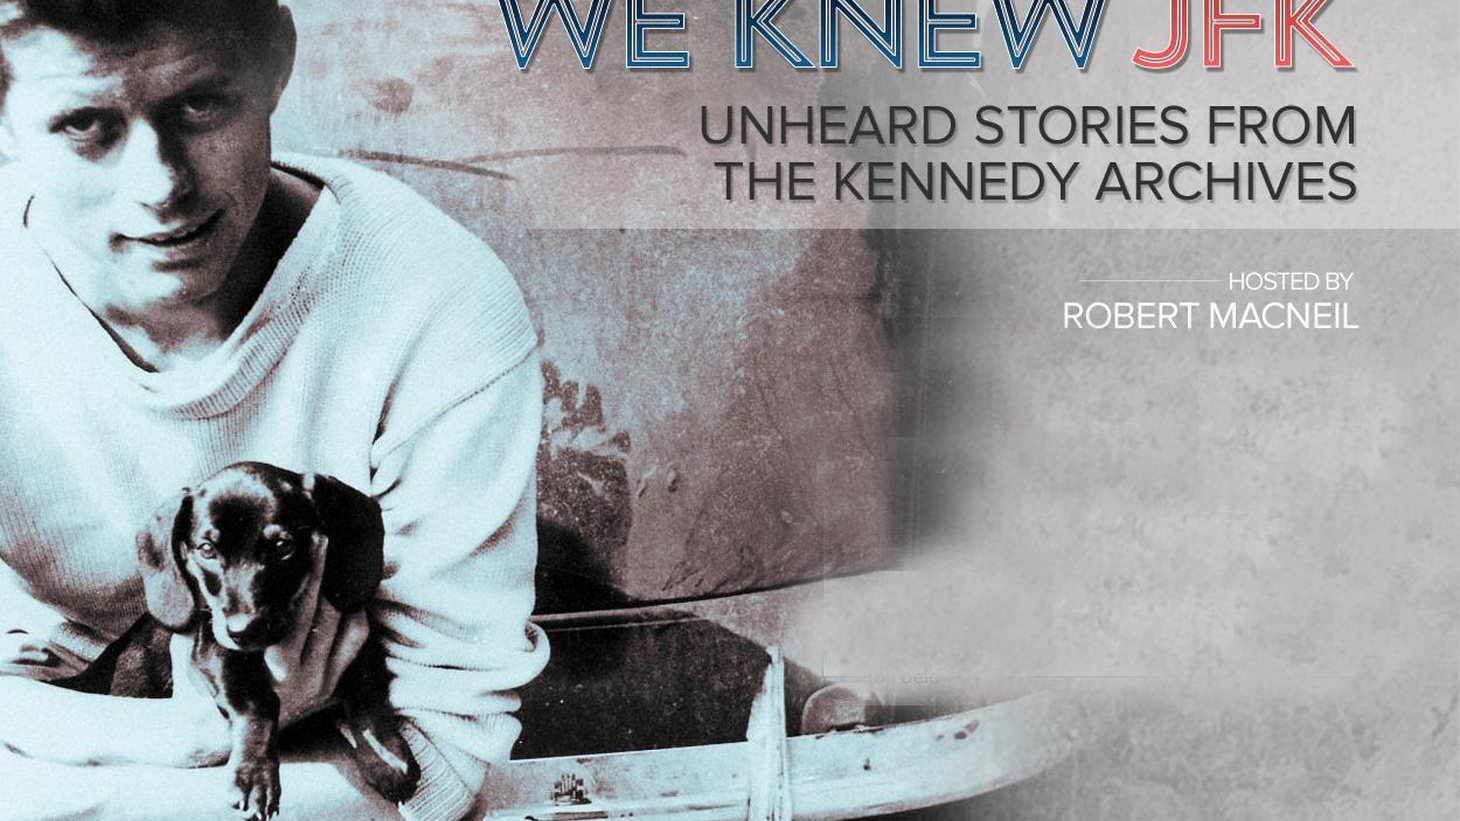 Never-before-broadcast memories from JFK's confidantes recorded just after the assassination. Hosted by legendary journalist Robert MacNeil. (Airs Thursday, November 21, 7pm)